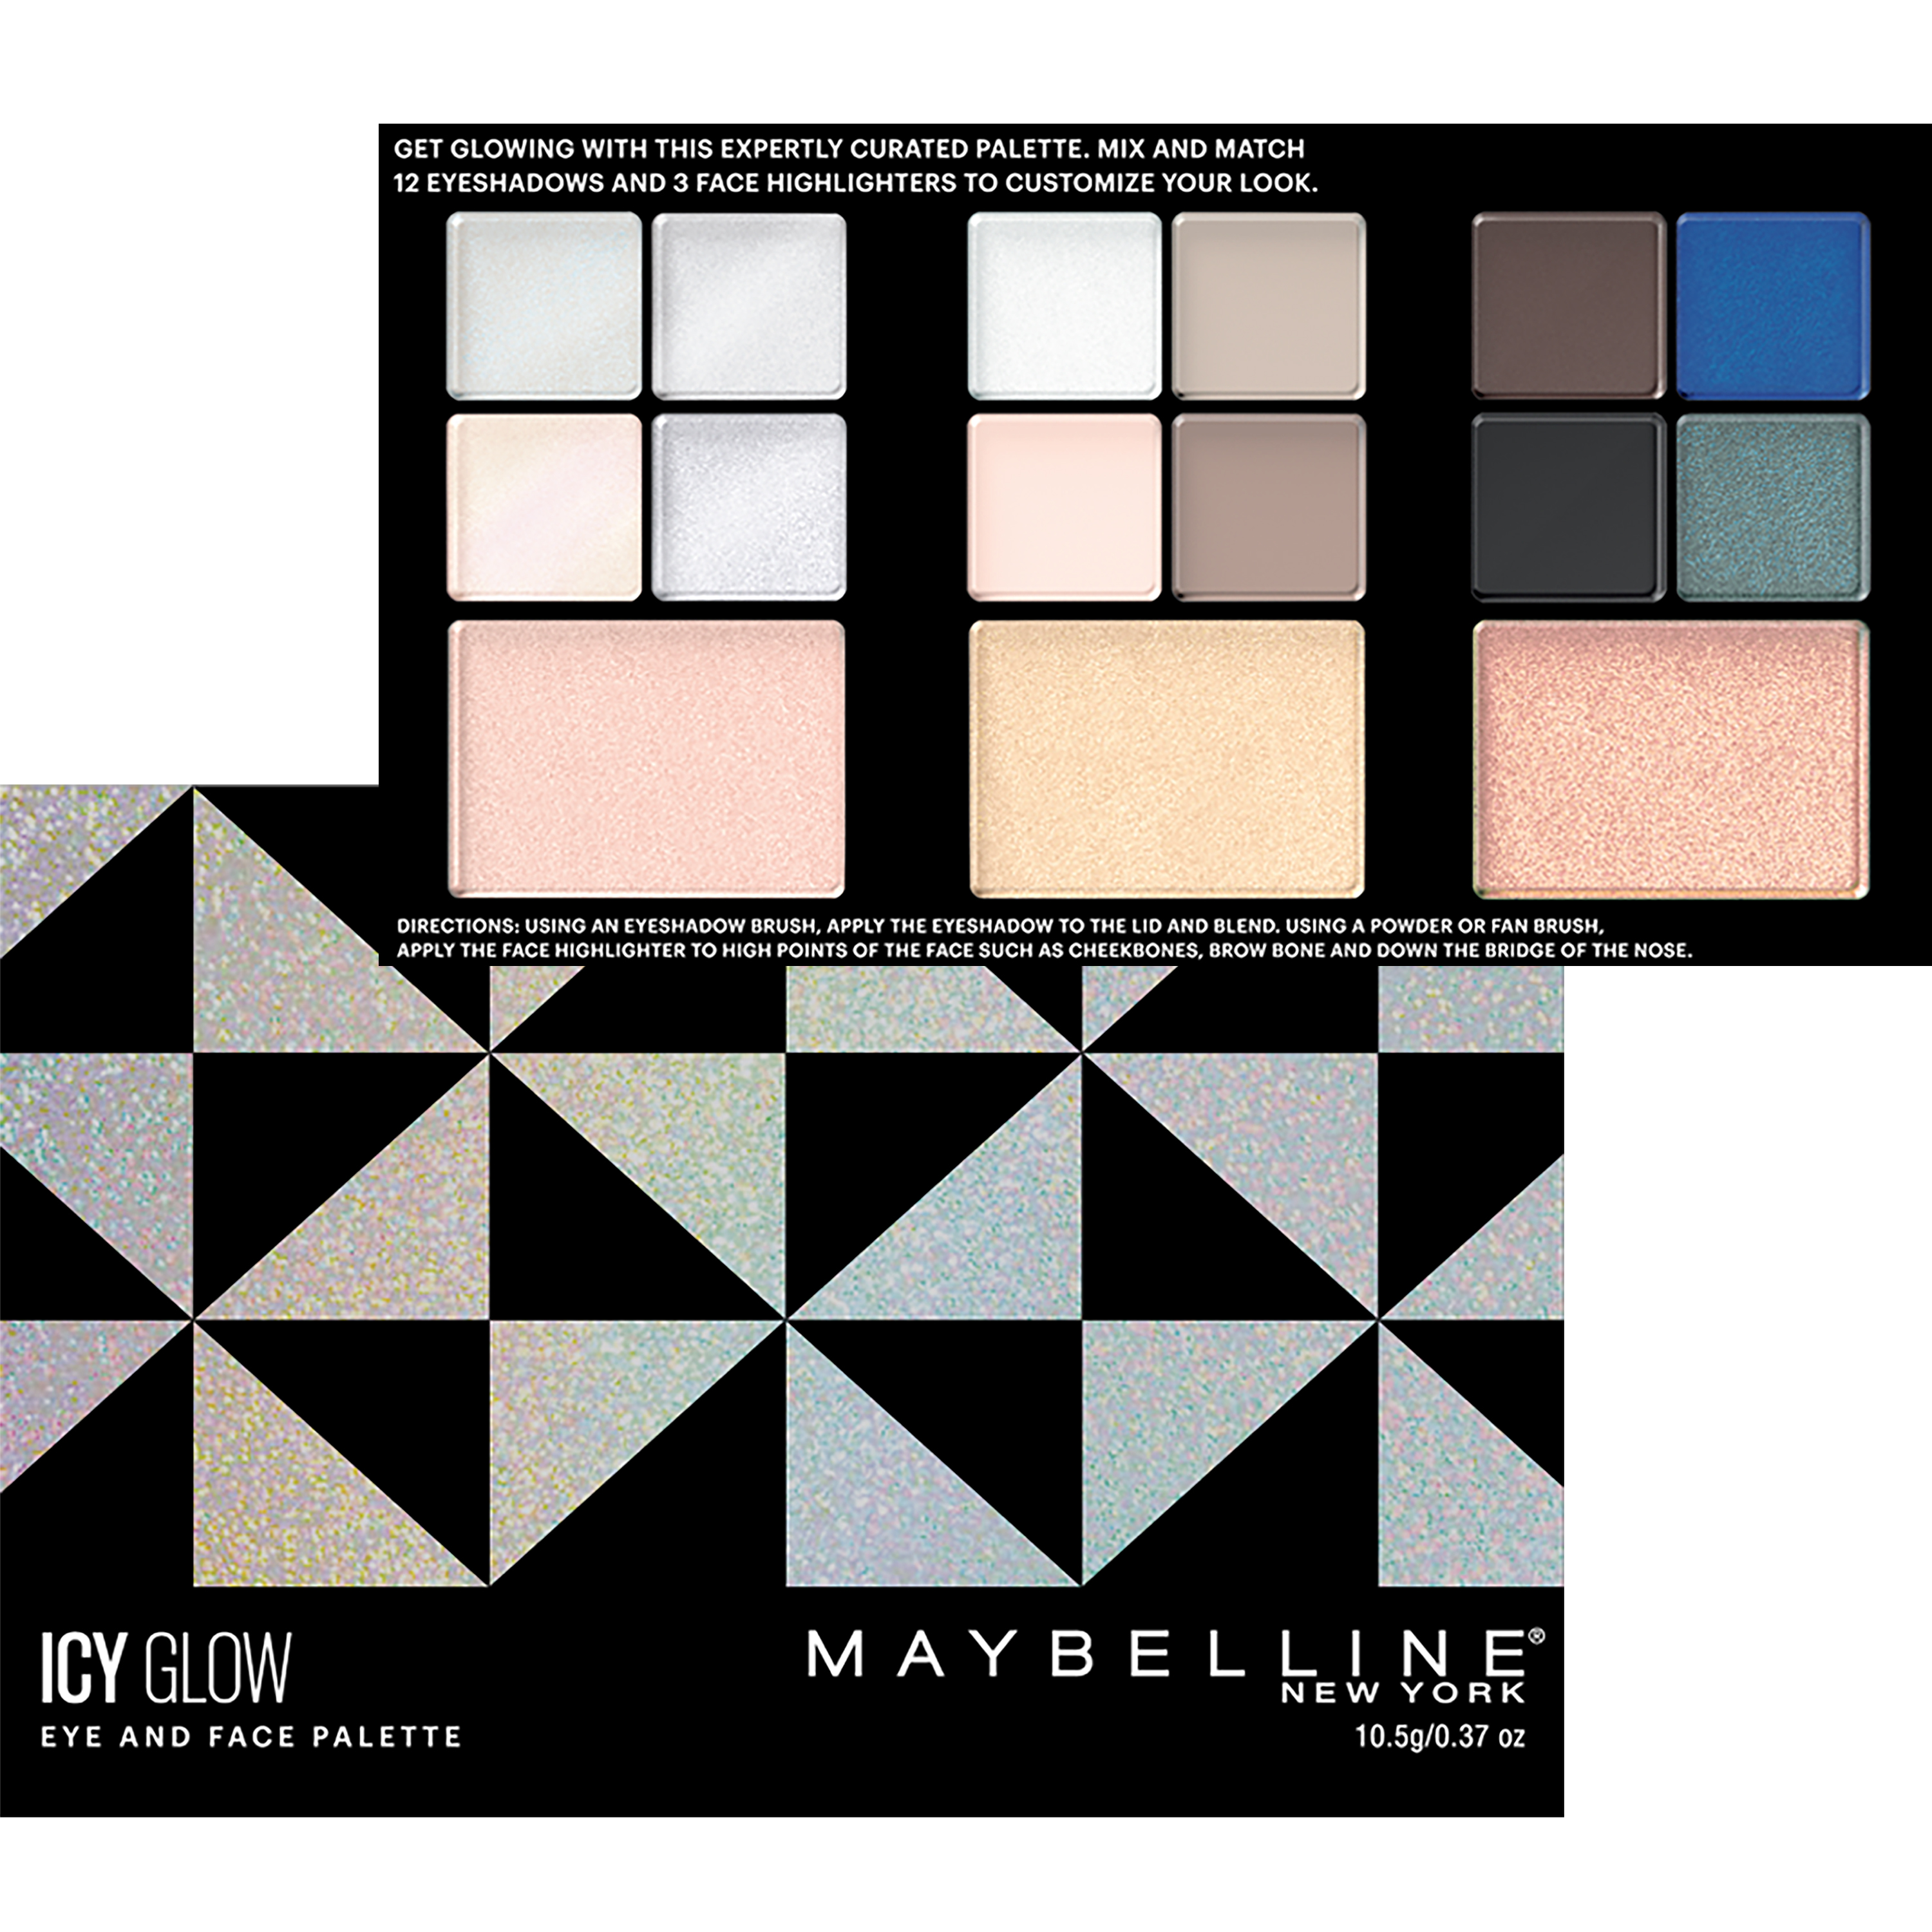 Maybelline Icy Glow Eye and Face Palette